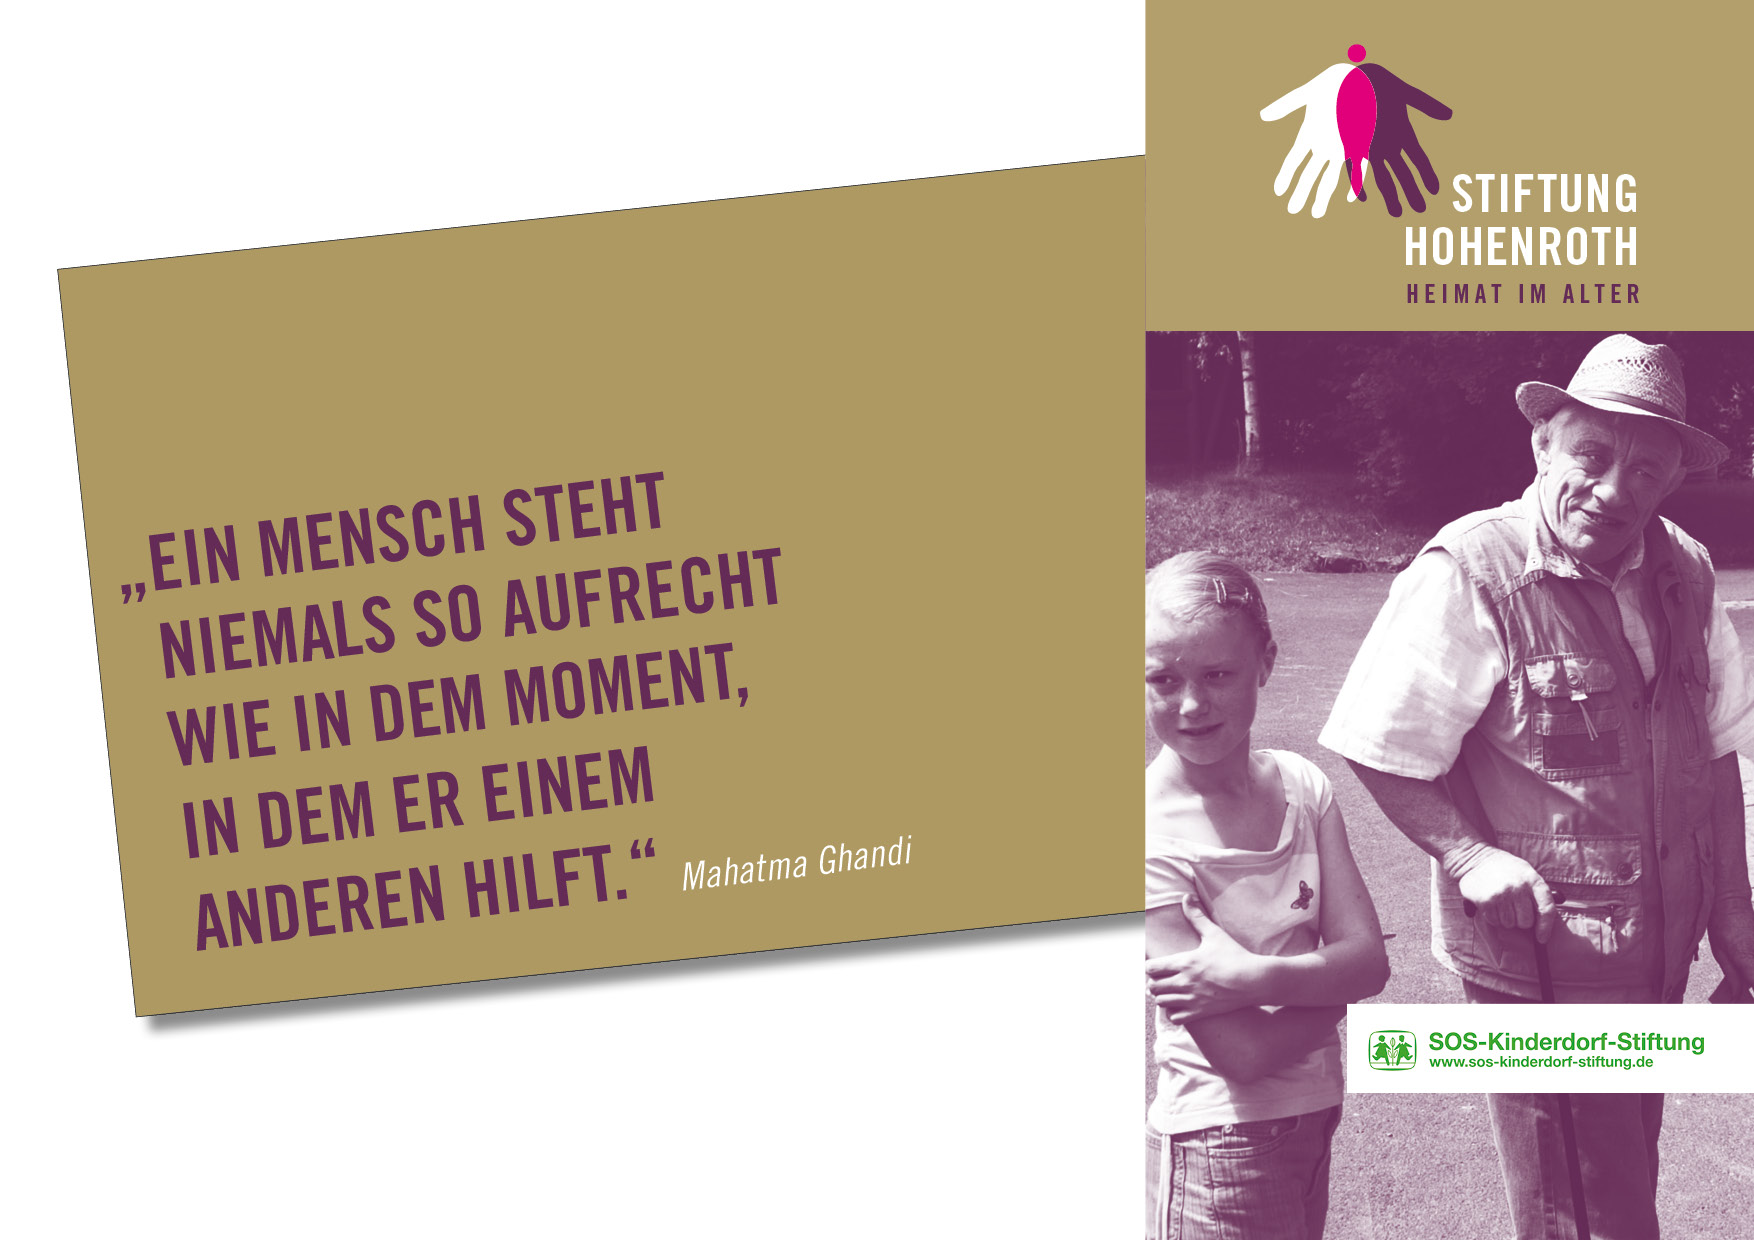 Stiftung Hohenroth